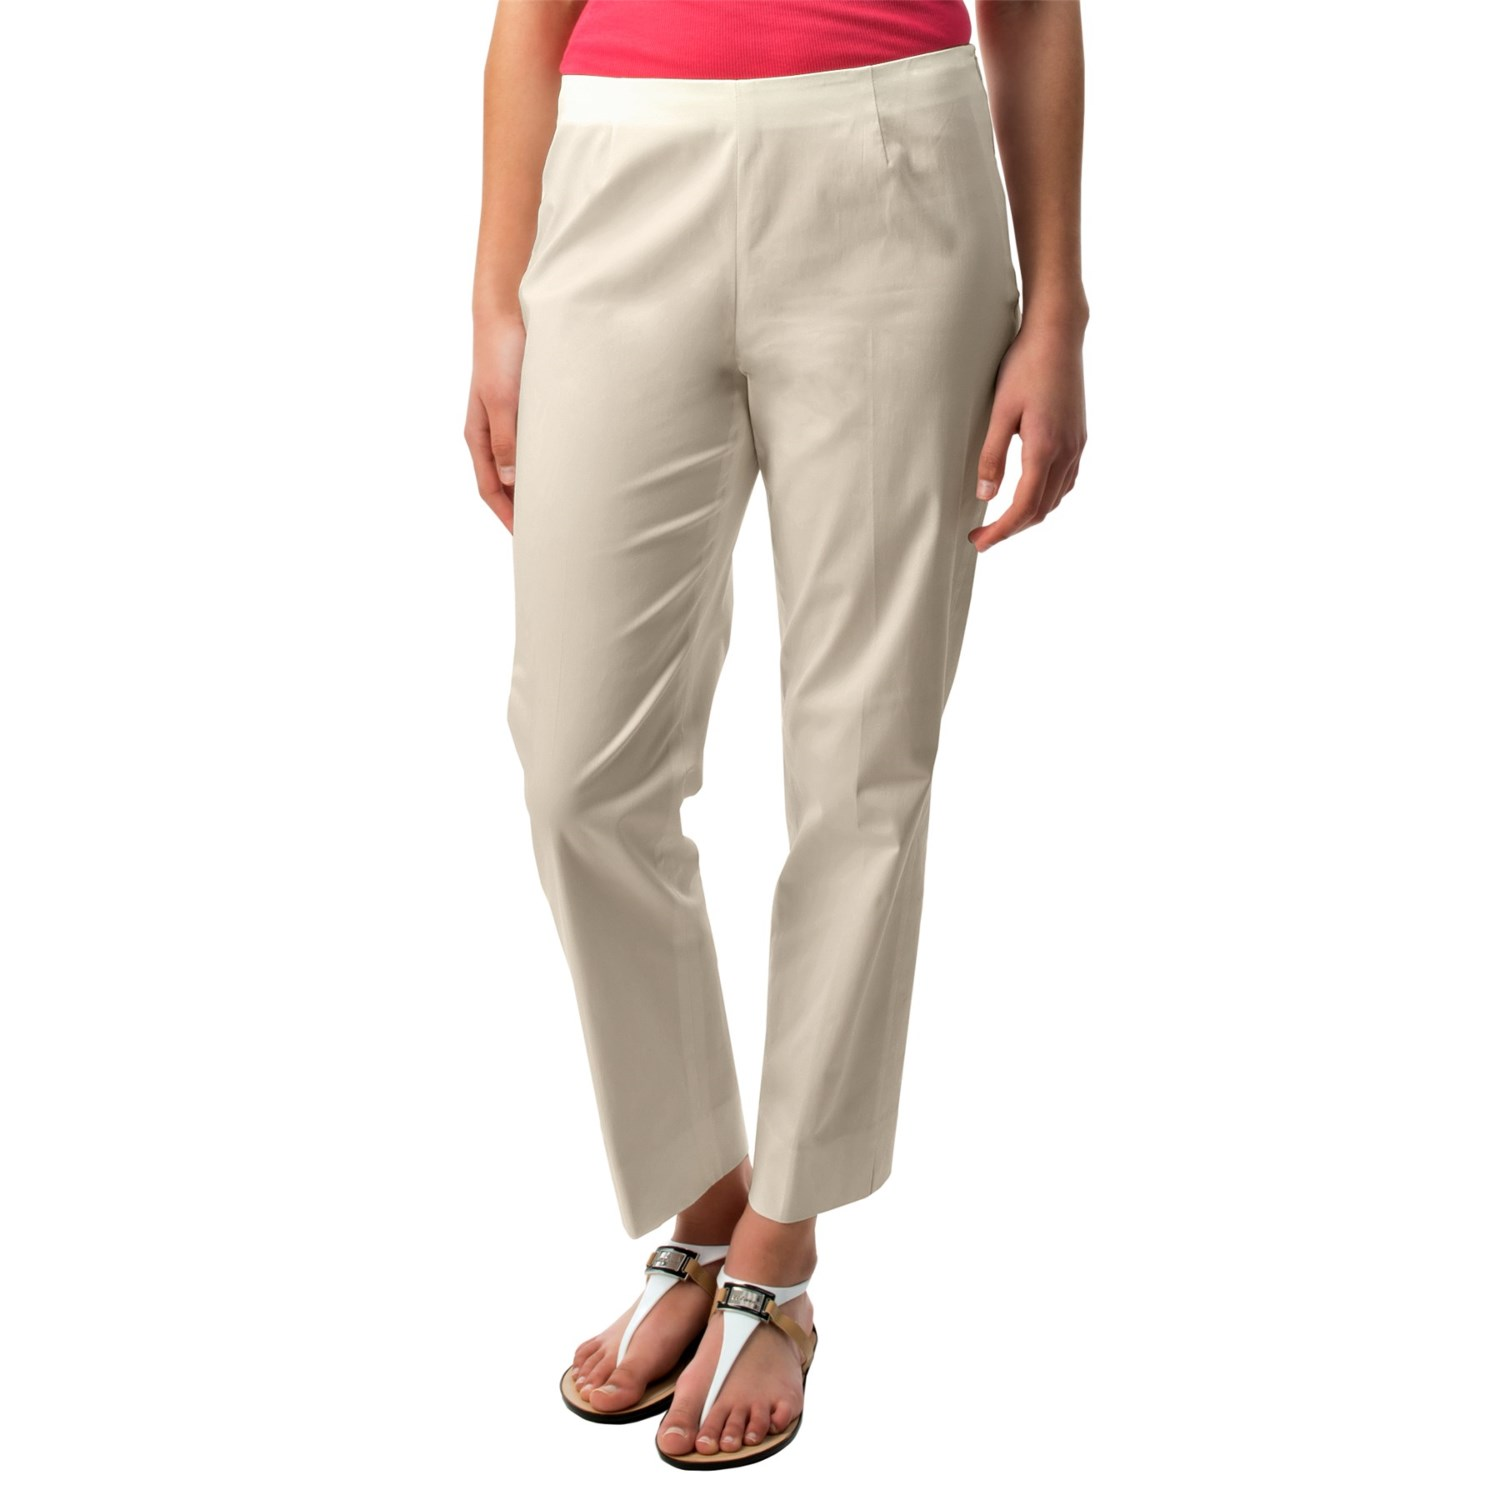 Model Two Star Dog Marni Ankle Pants (For Women) 4200H - Save 87%